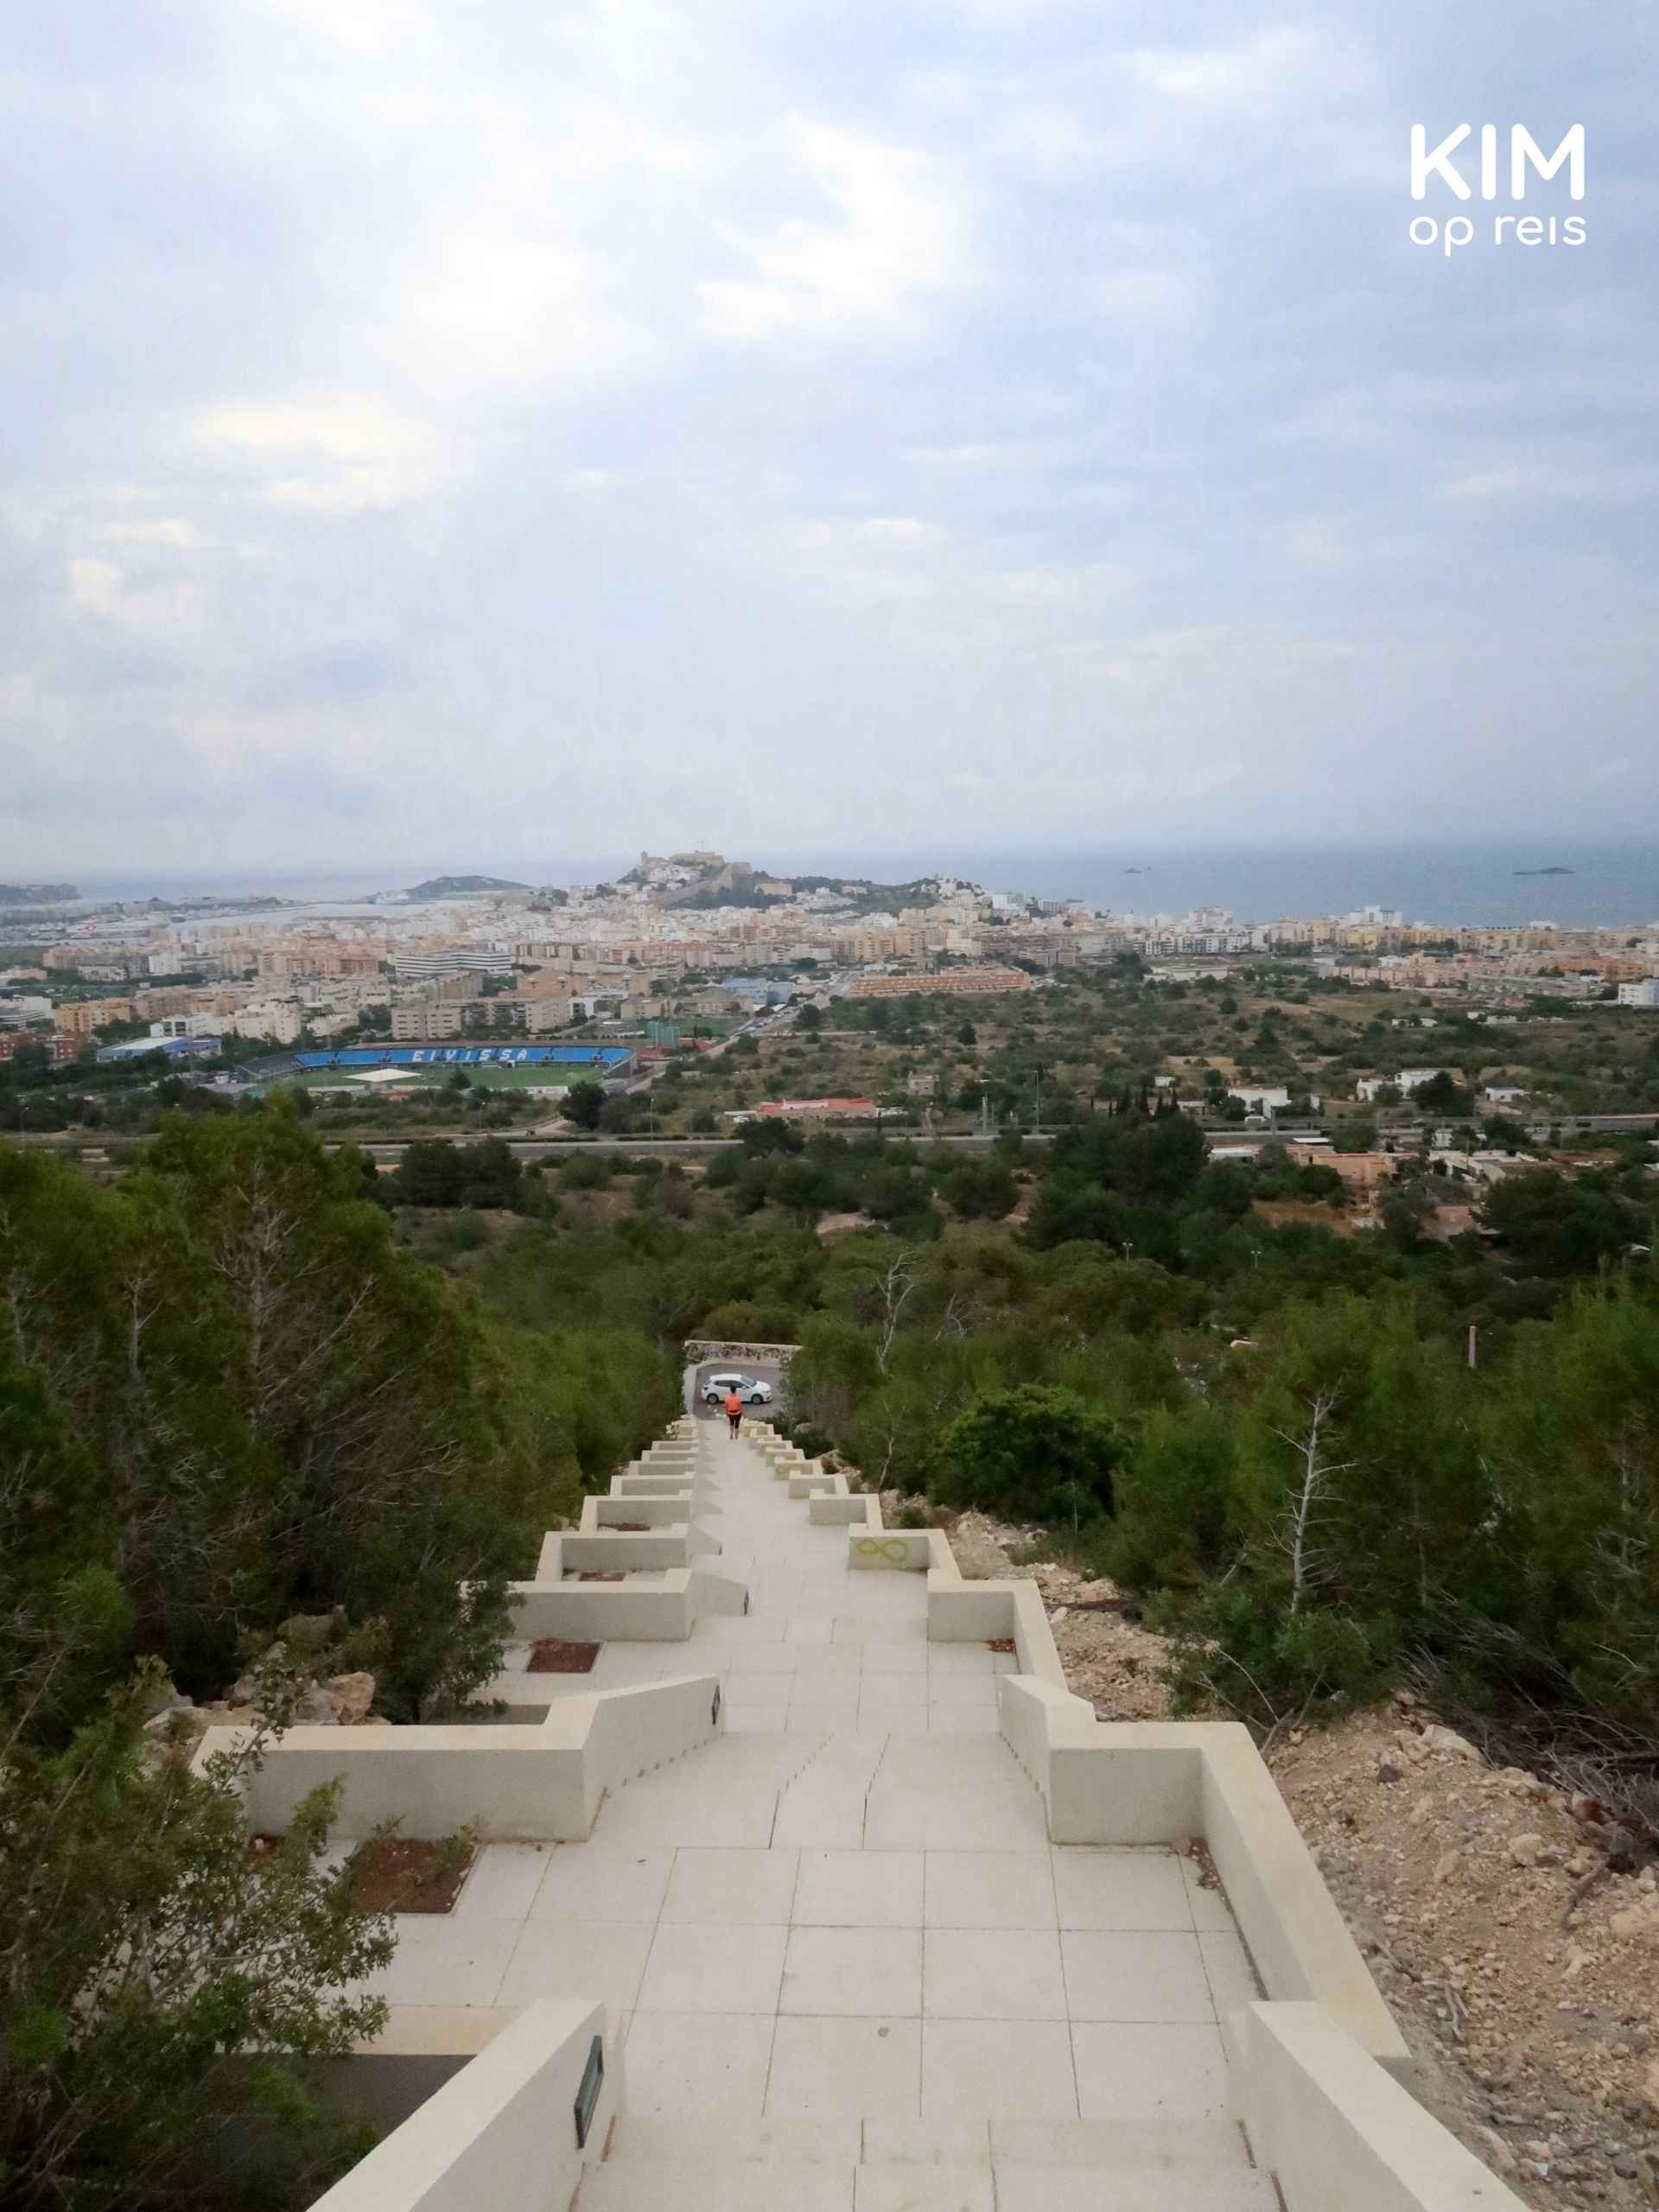 Stairs viewpoint Ibiza Town: from the top of the stairs, you look over the stairs and the town in the distance